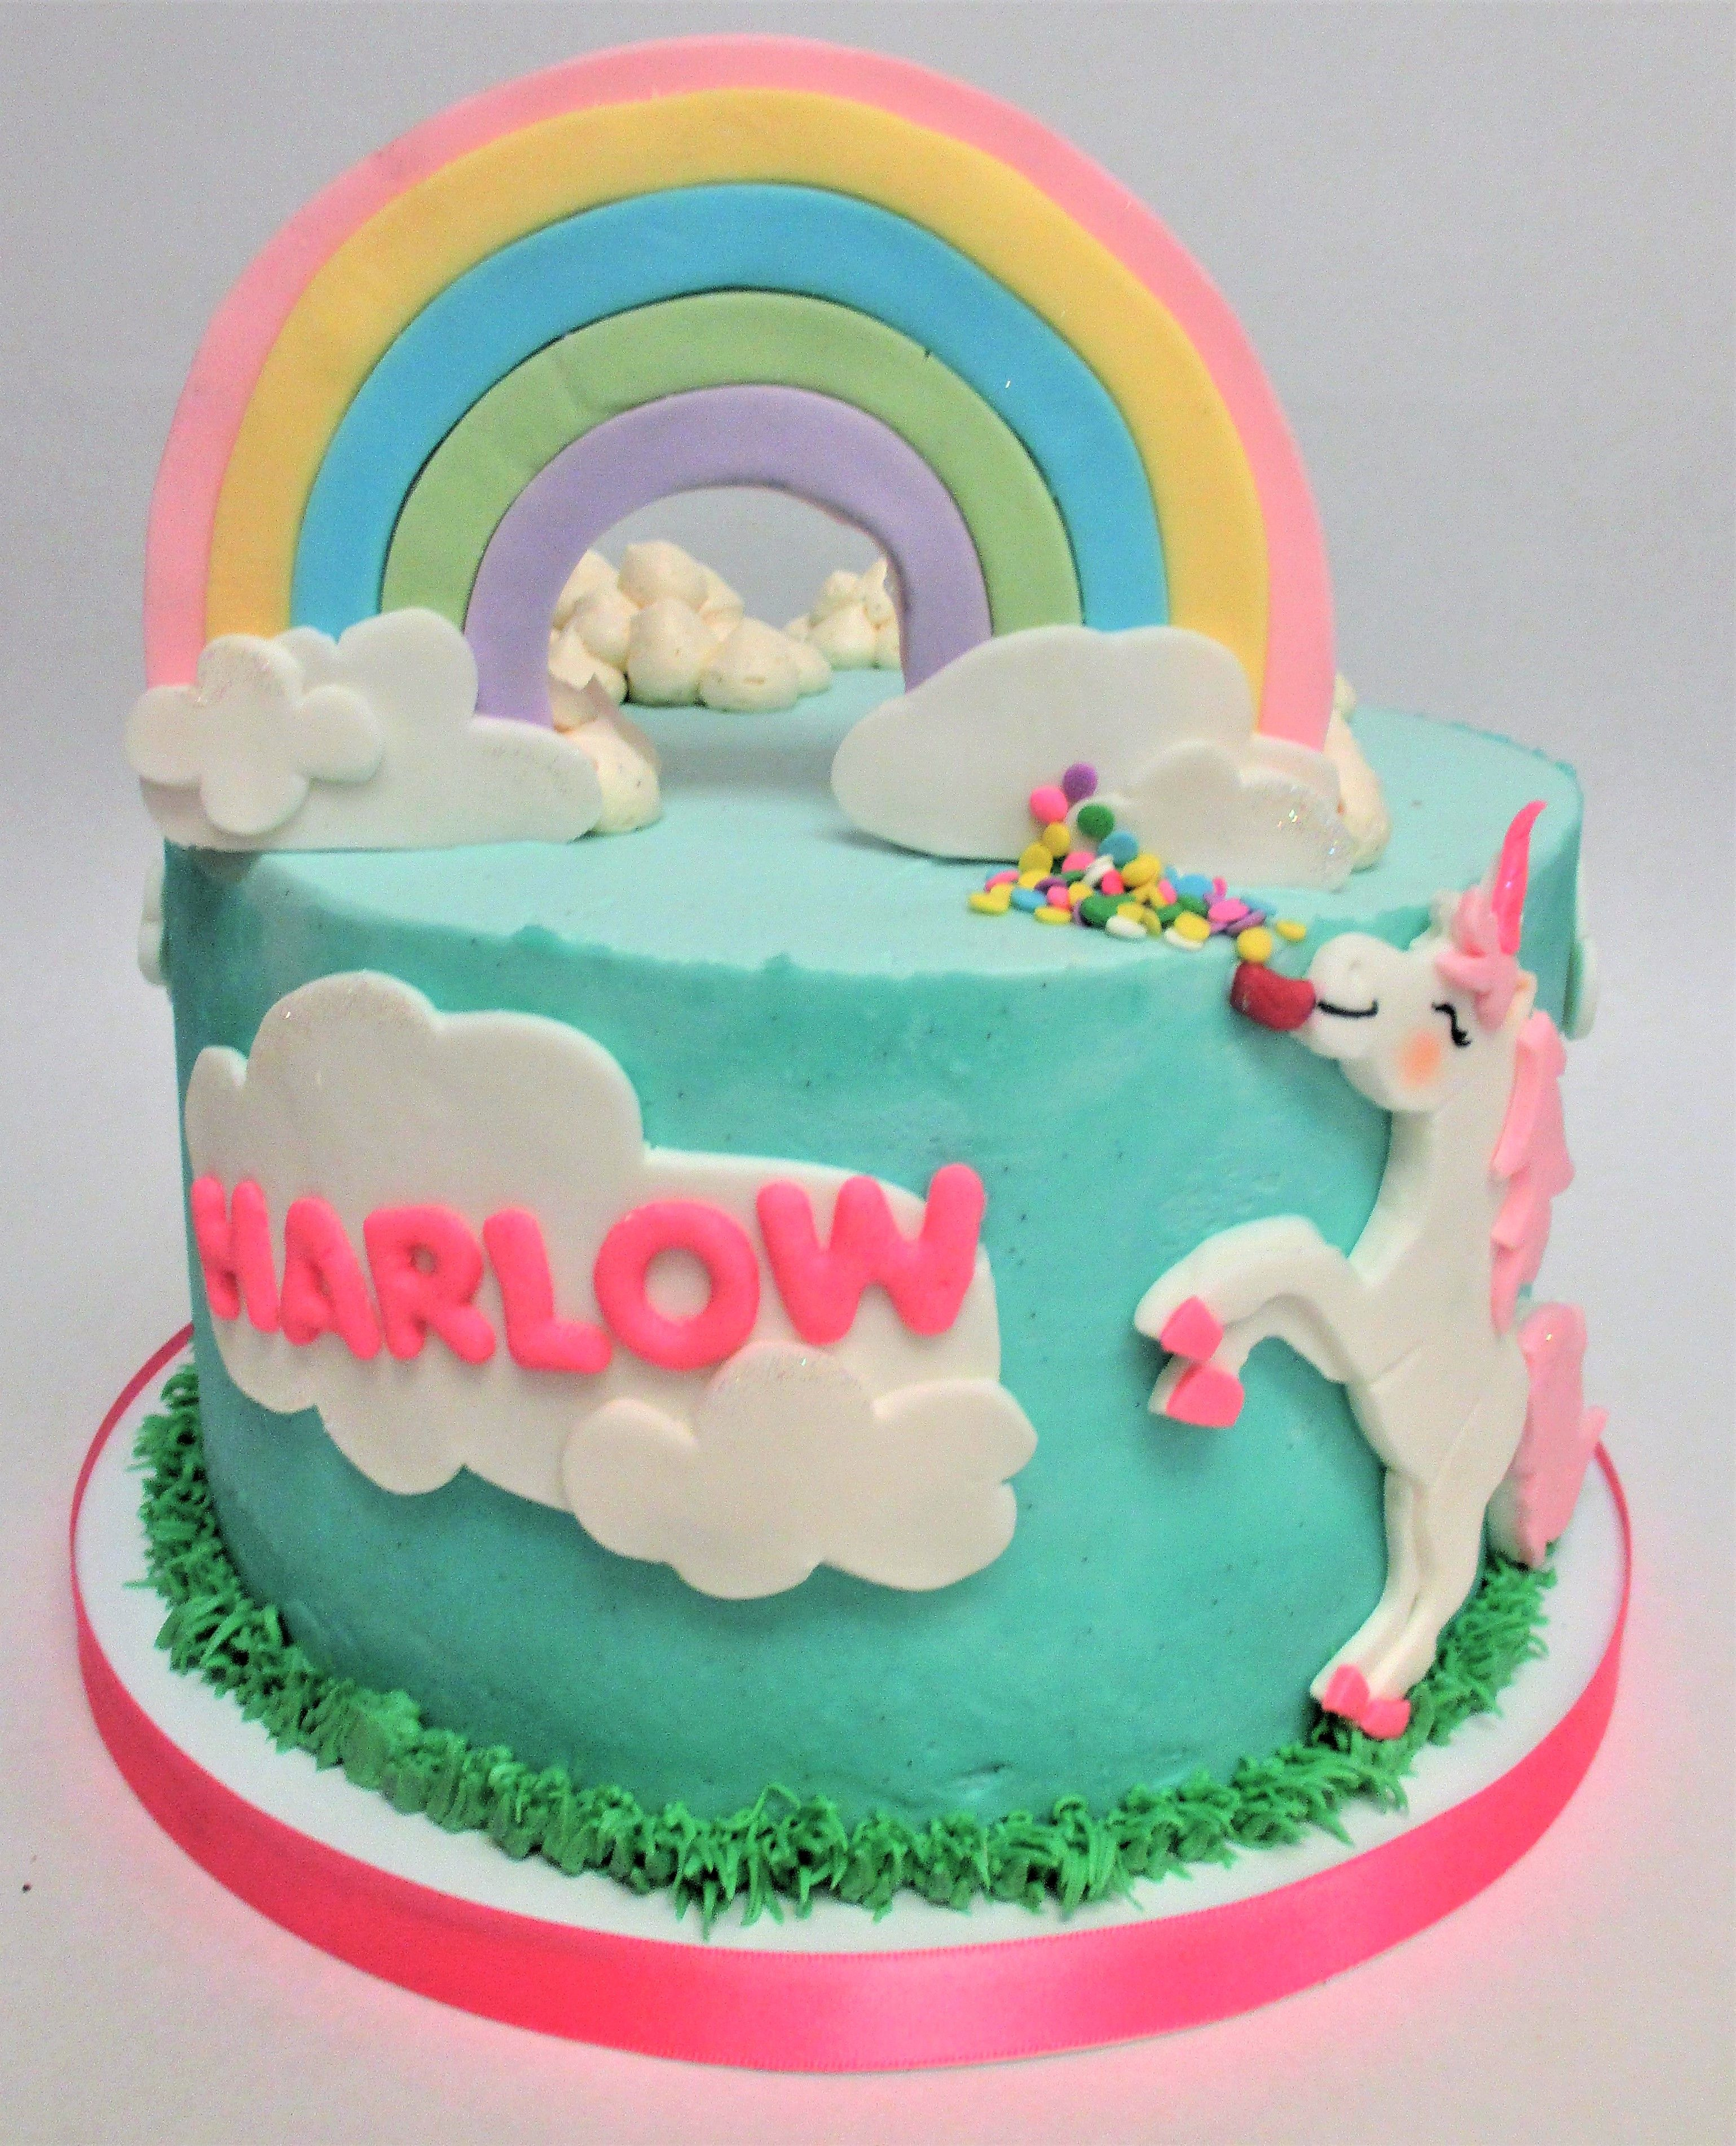 Rainbow Unicorn Kids Birthday Cake by Flavor Cupcakery Cake Design